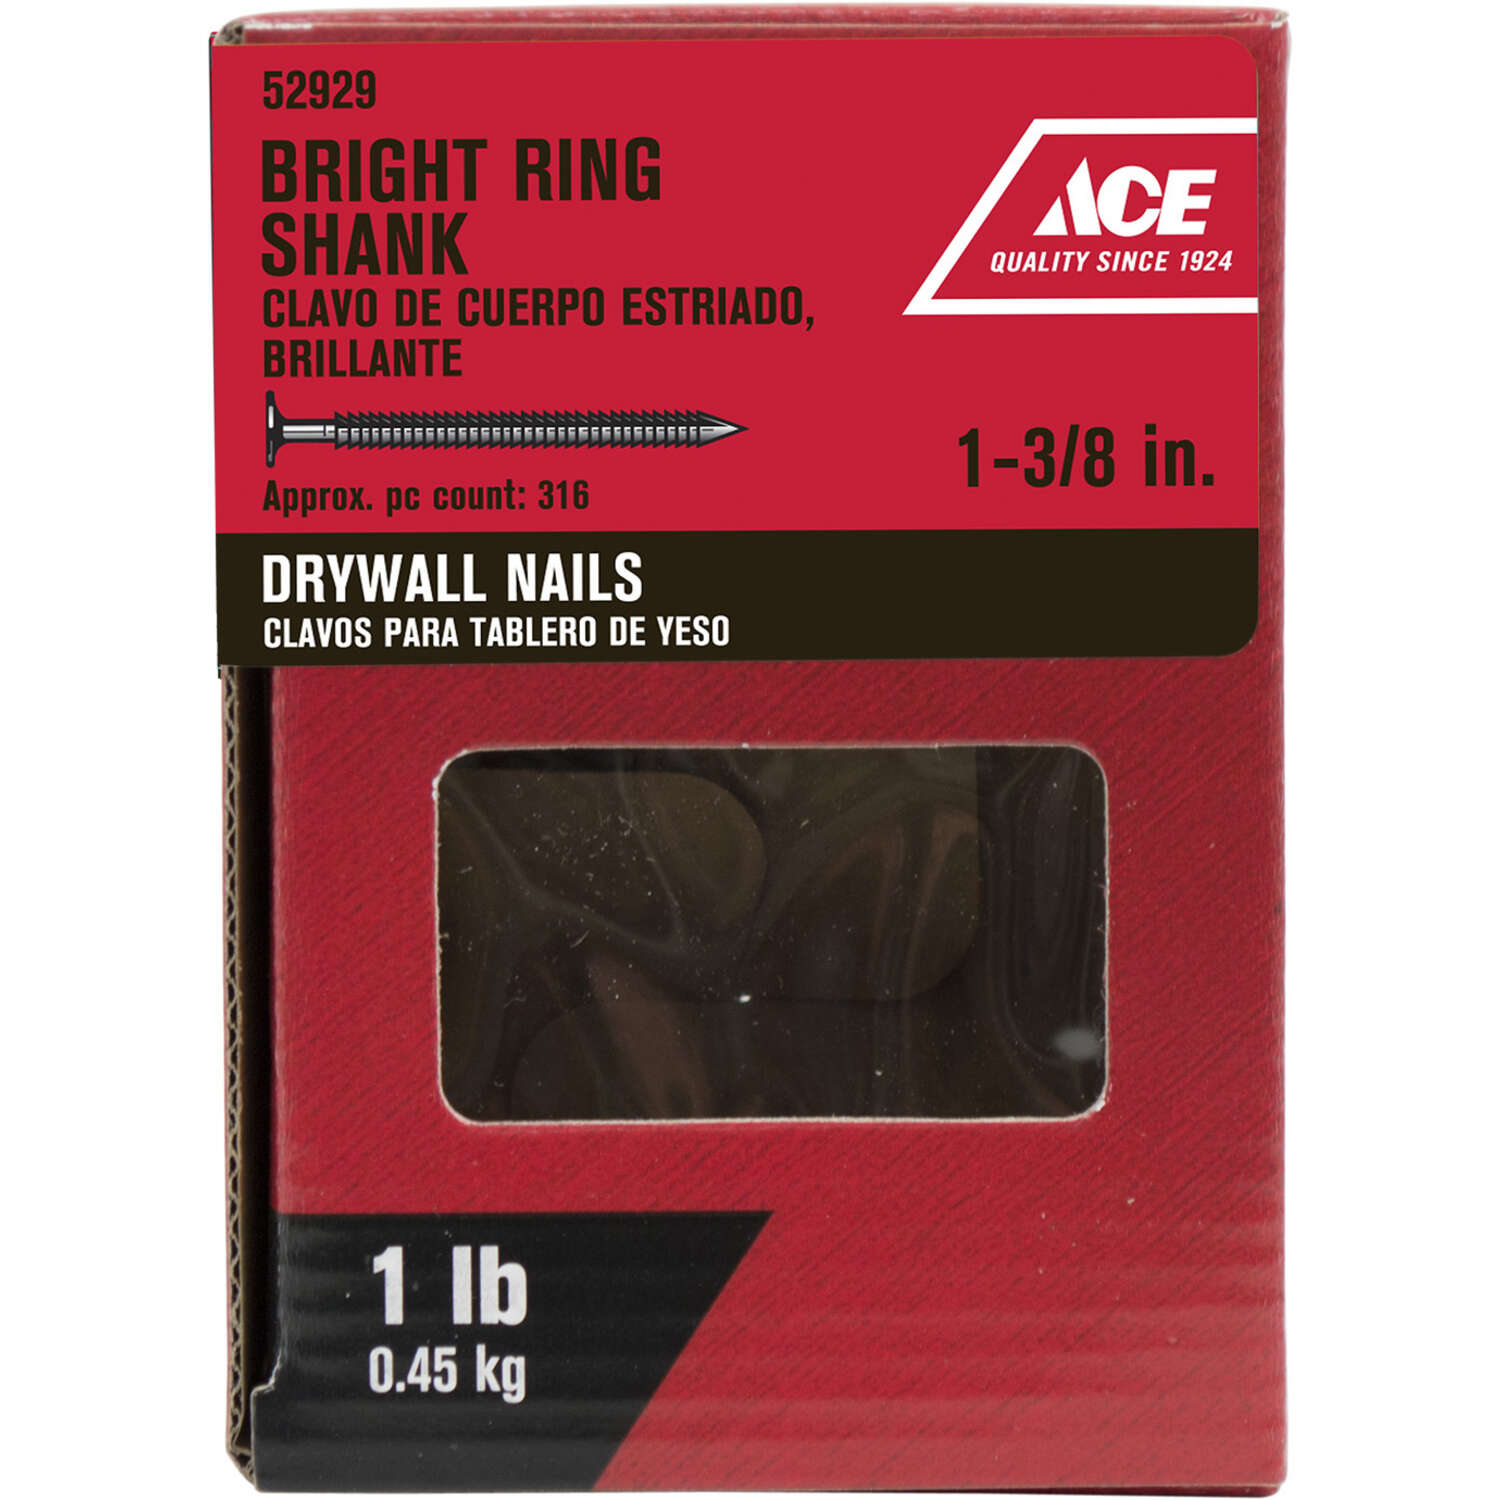 Ace  1-3/8 in. Drywall  Bright  Steel  Nail  Flat  1 lb.